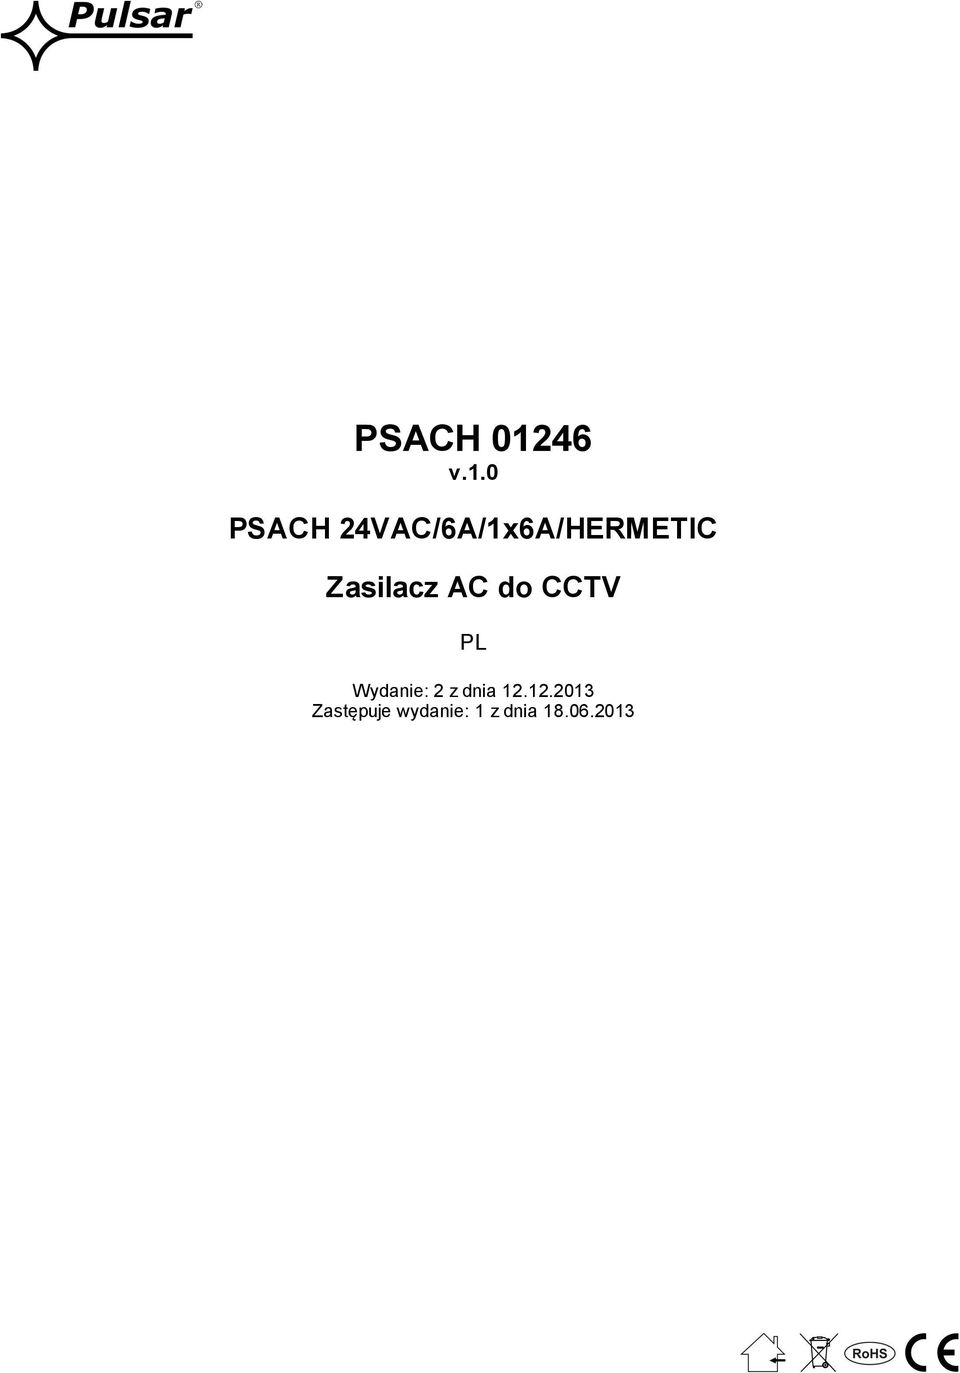 0 PSACH 24VAC/6A/1x6A/HERMETIC